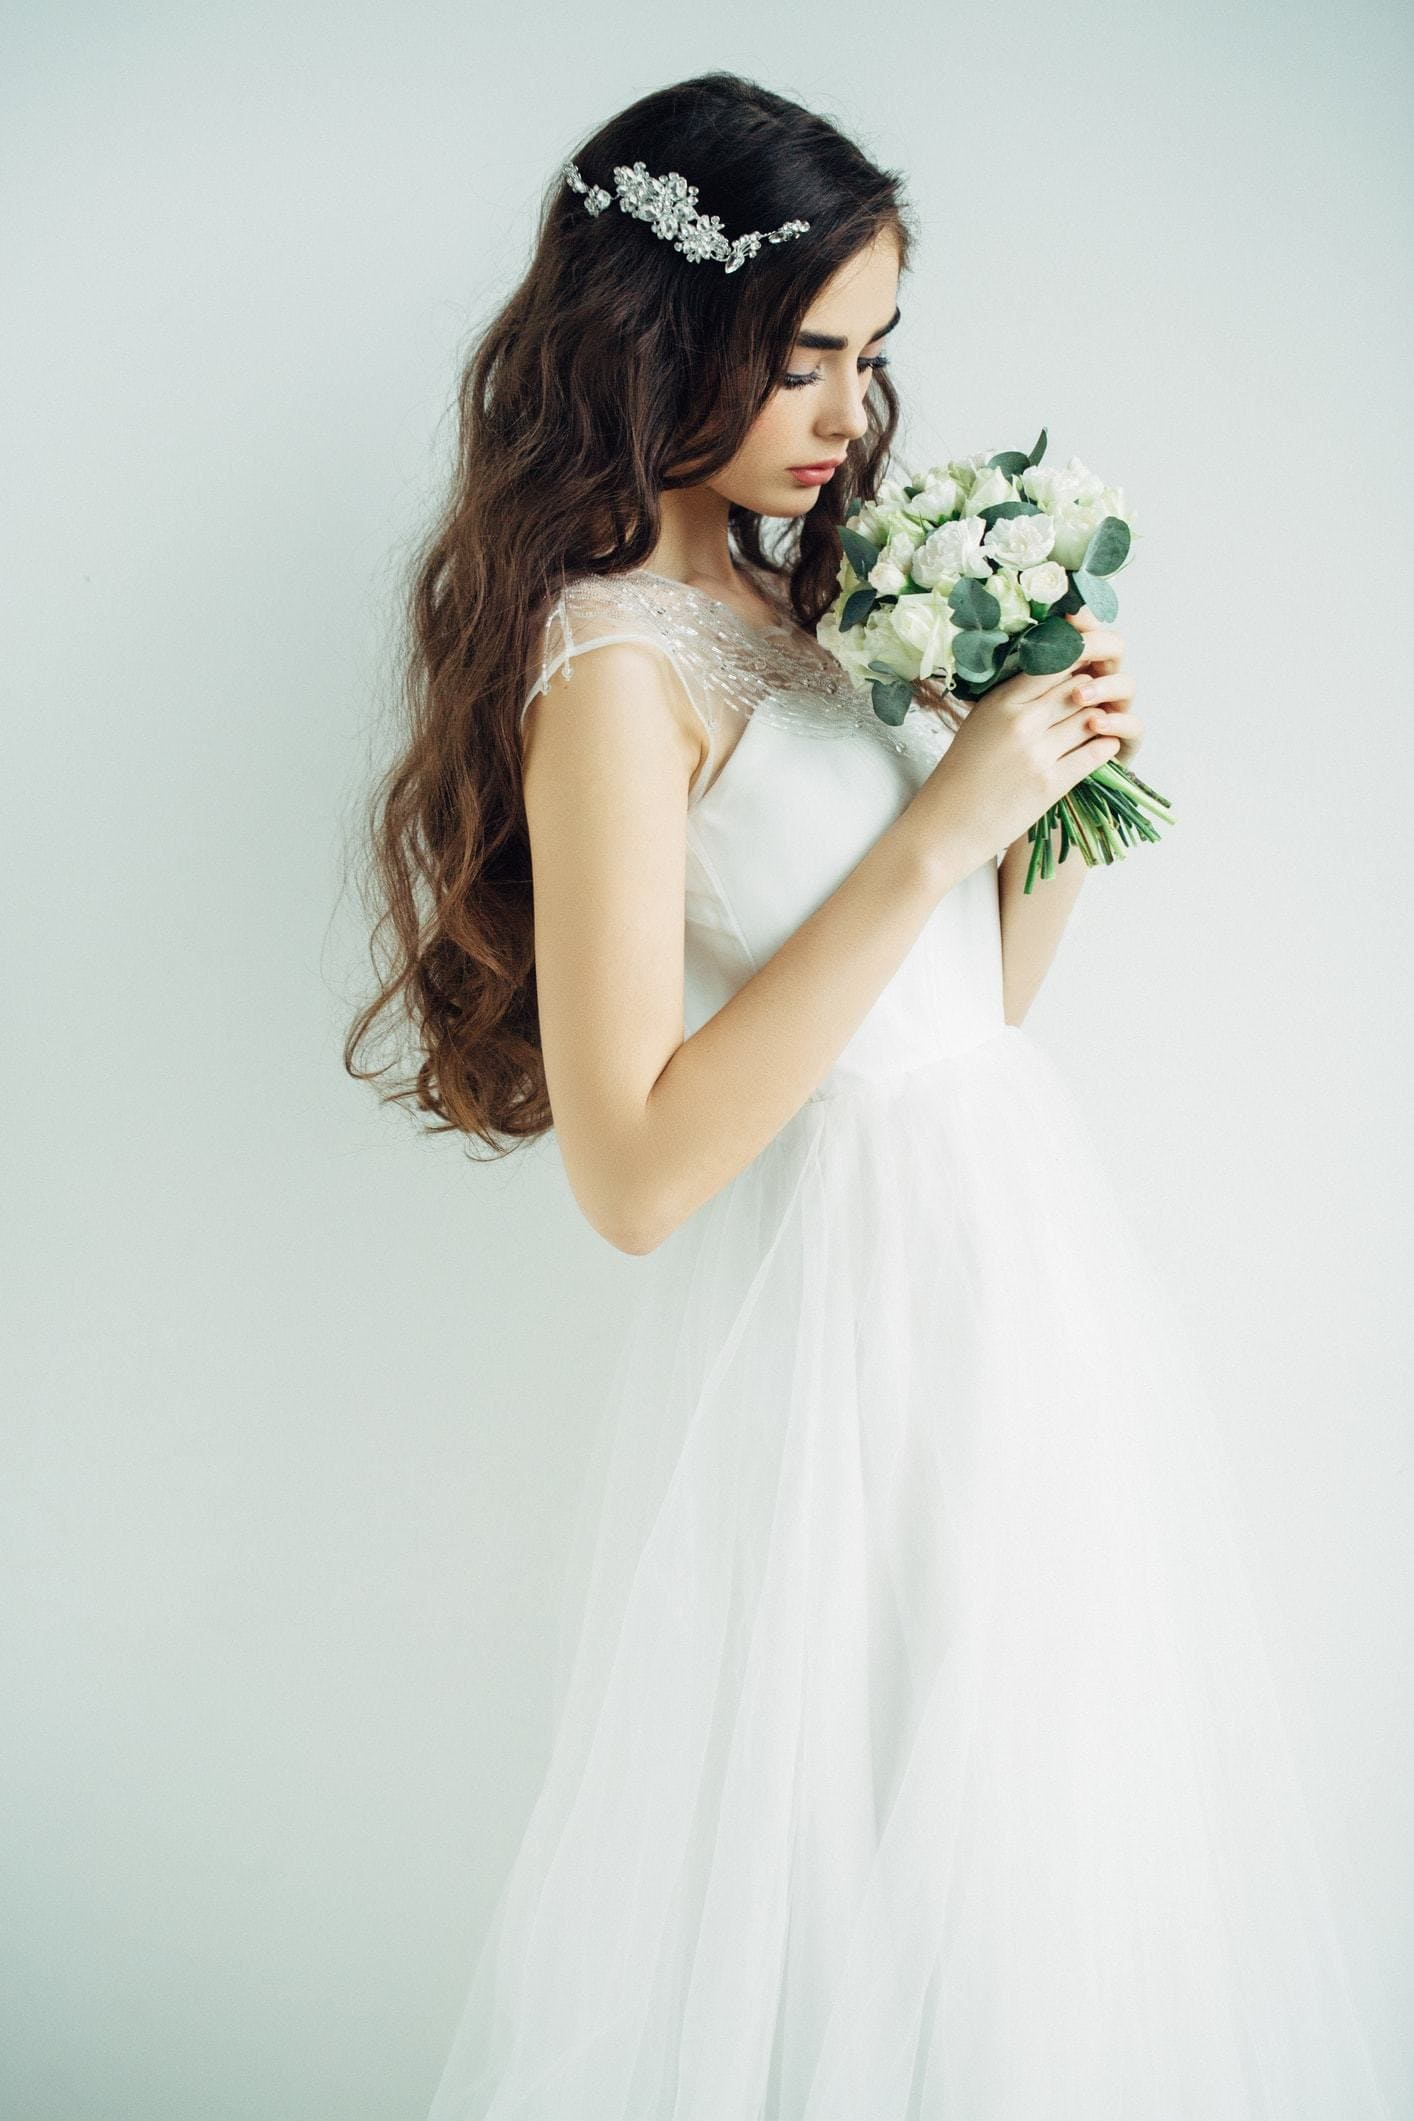 2018 Top Wedding Hairstyles For Amazing Bridal Style! 2